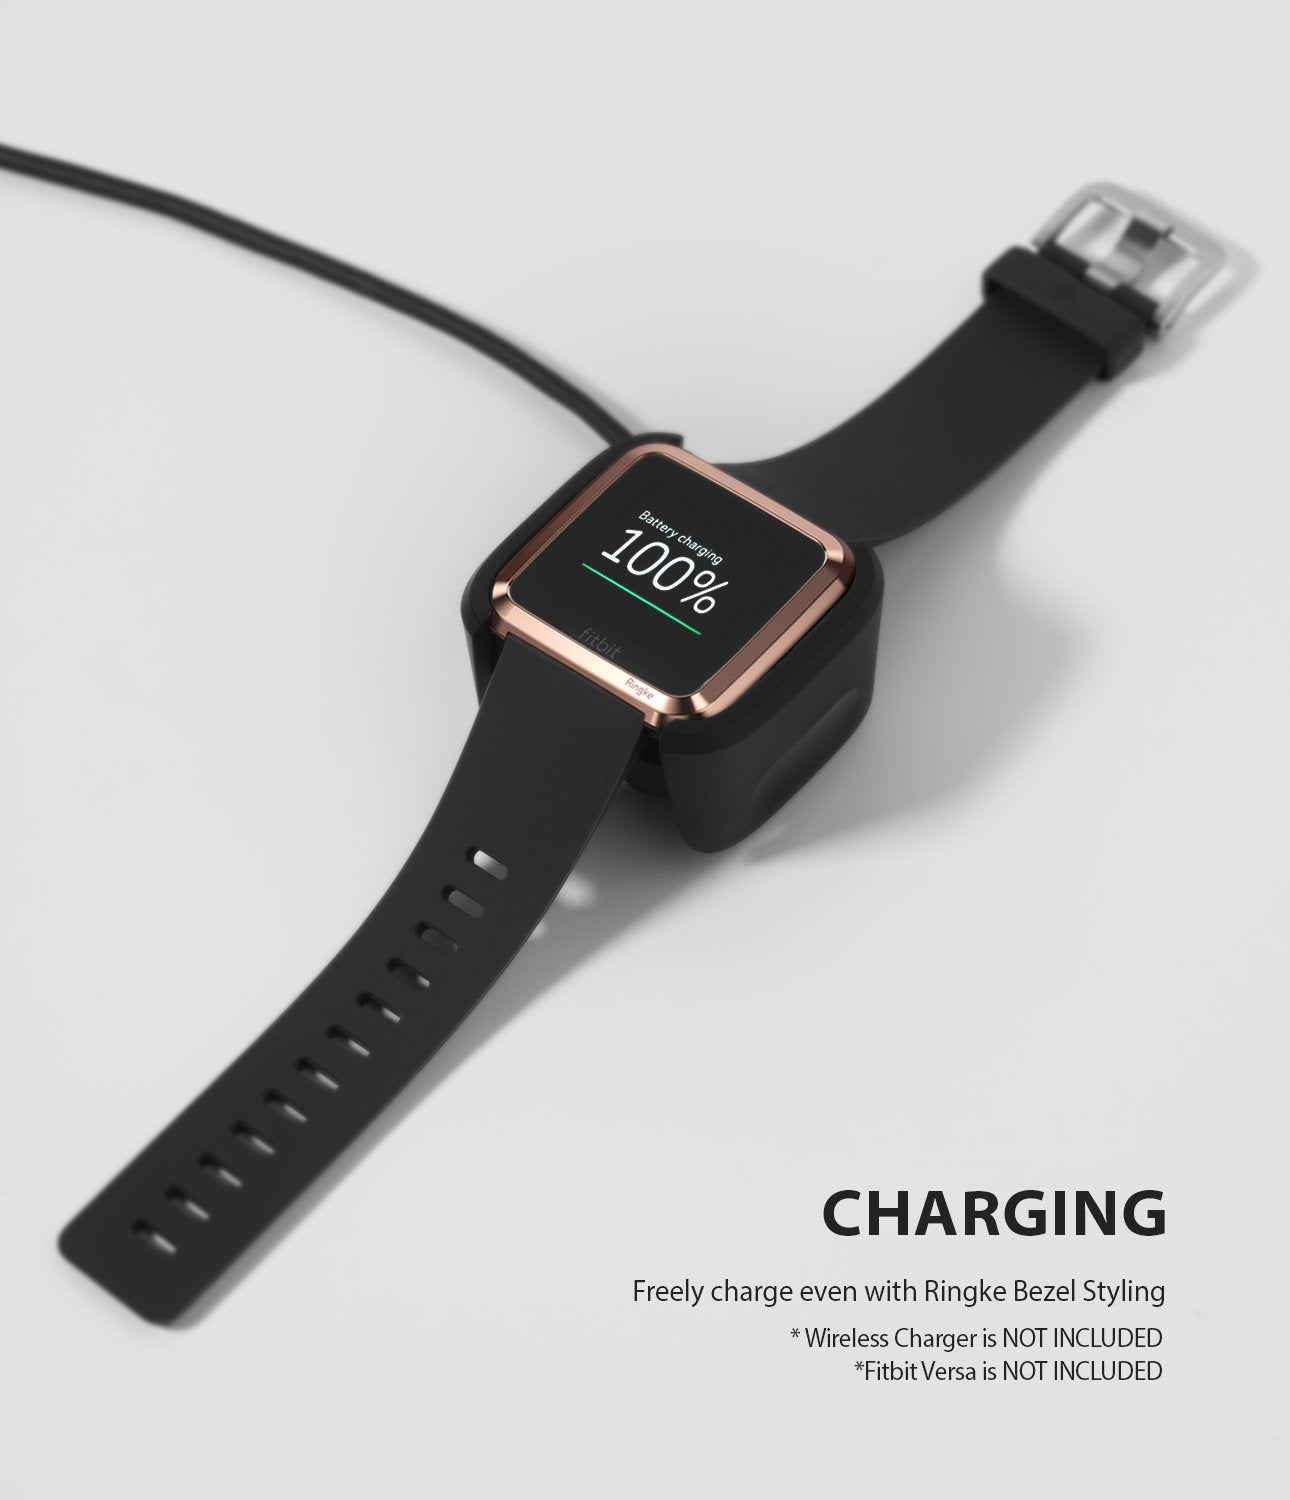 Ringke Bezel Styling Designed for Fitbit Versa Case Cover, Rose Gold - FW-V-02, wireless charger compatible